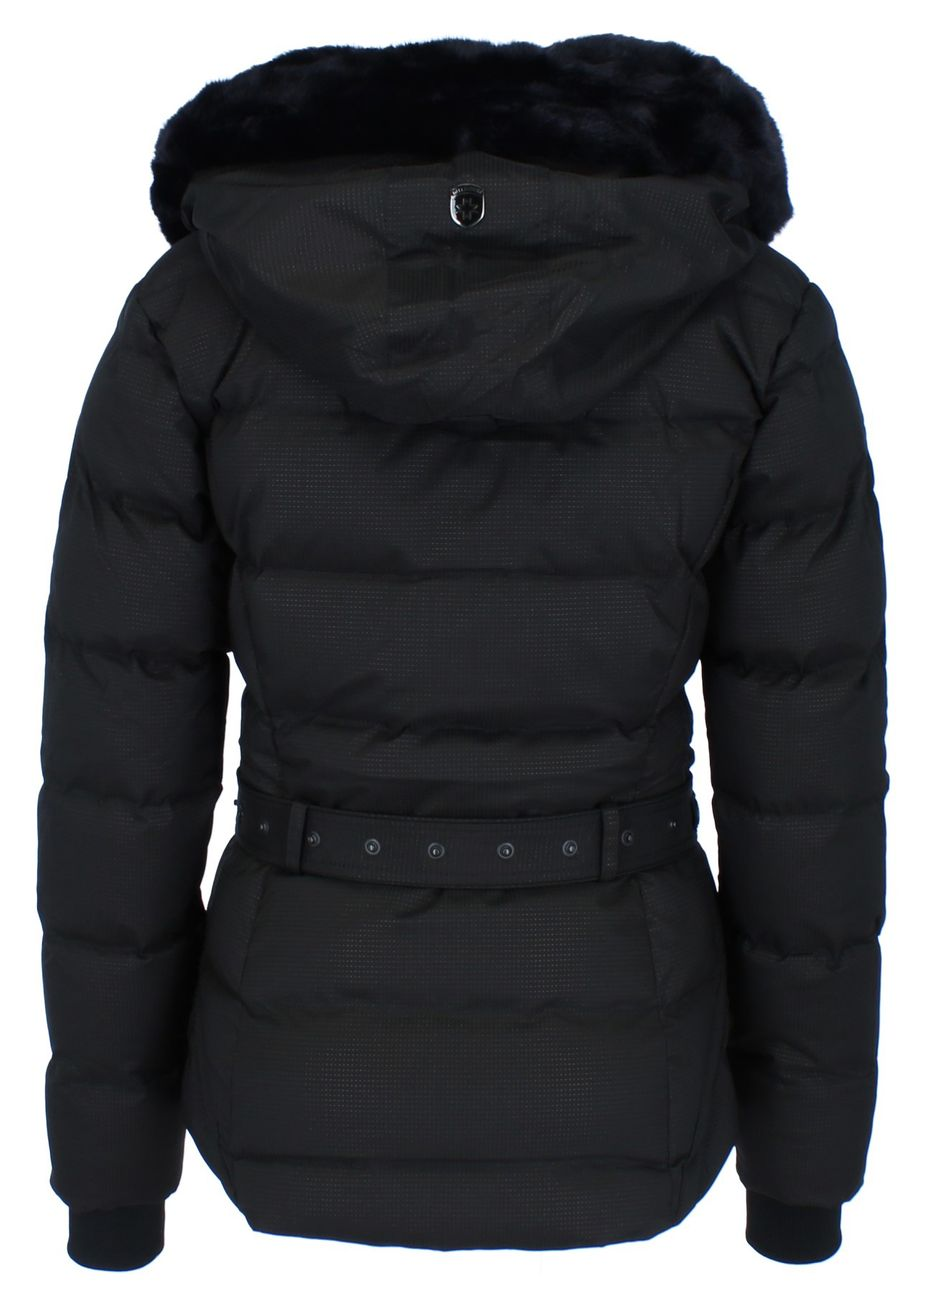 Details zu Wellensteyn Mayfair MAYF 859 gesteppte Damen Winterjacke